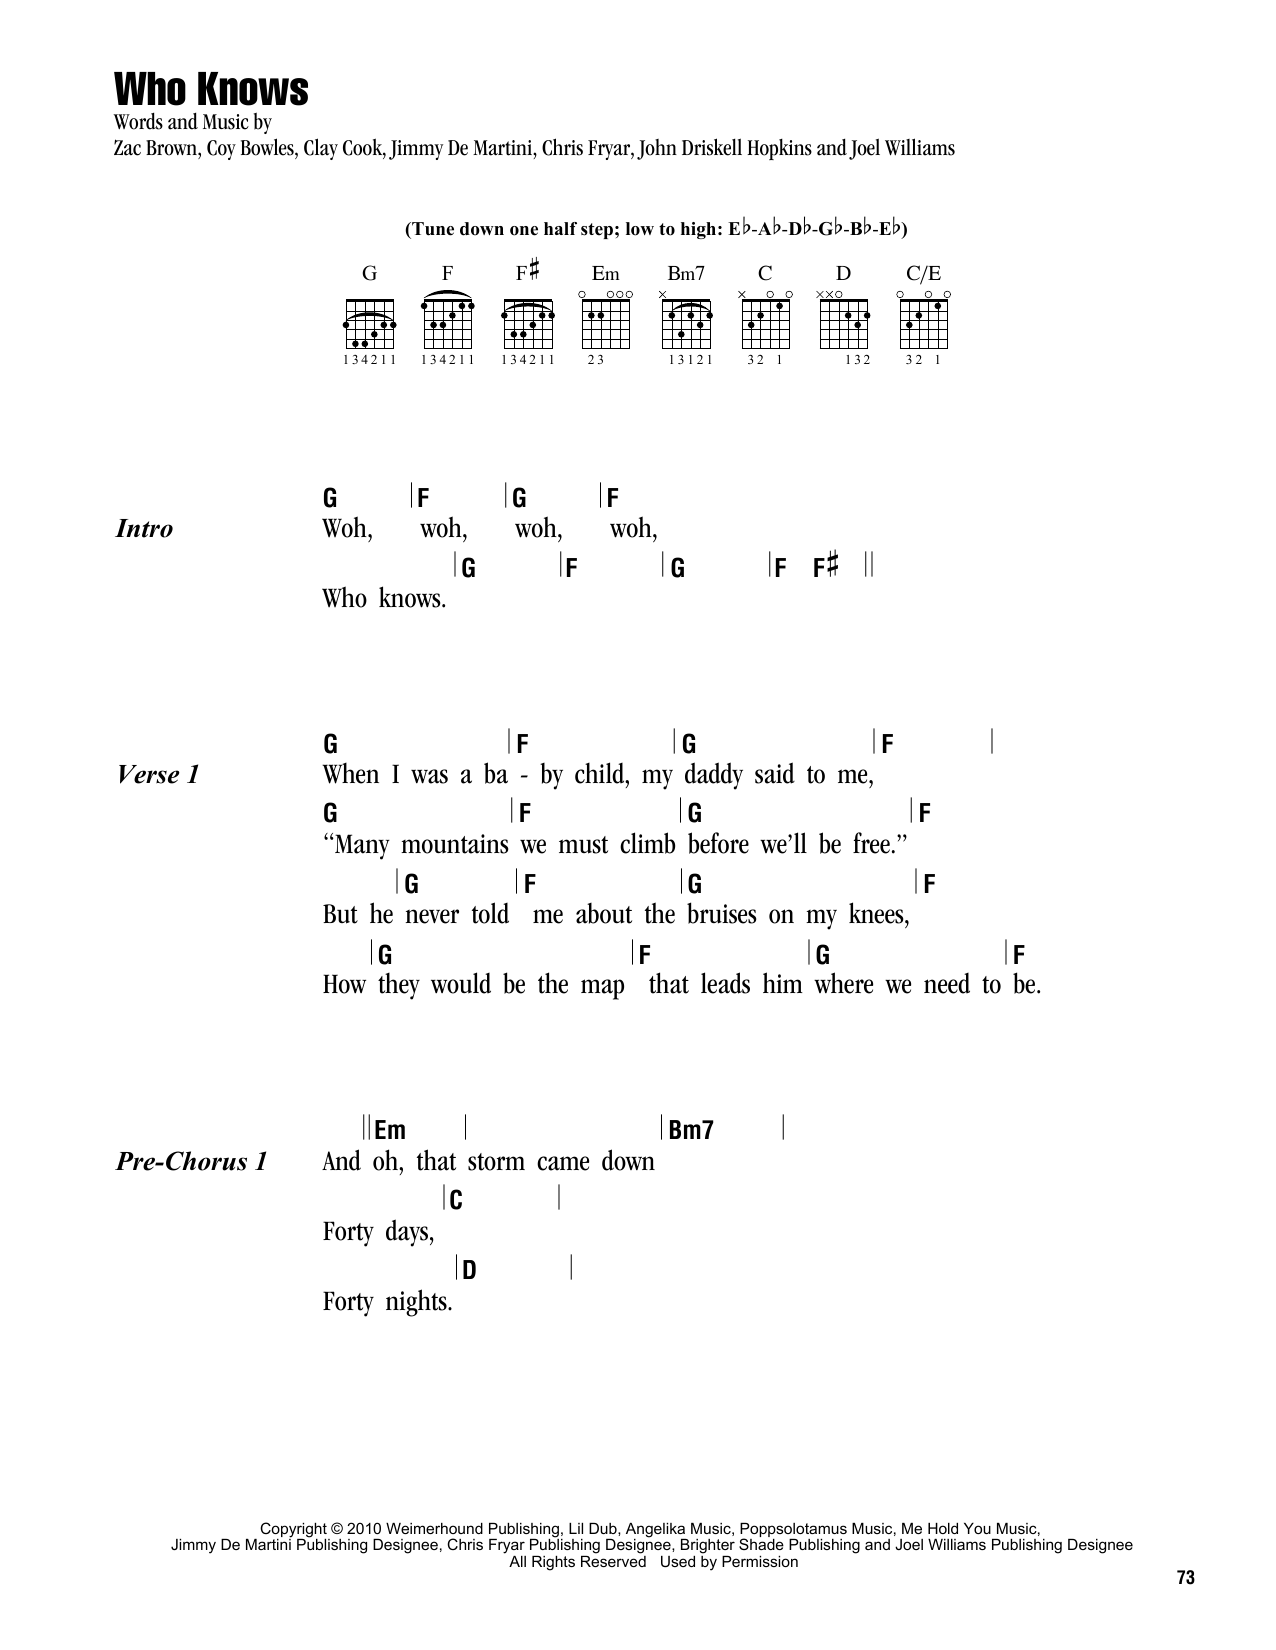 Who Knows by Zac Brown Band - Guitar Chords/Lyrics - Guitar Instructor